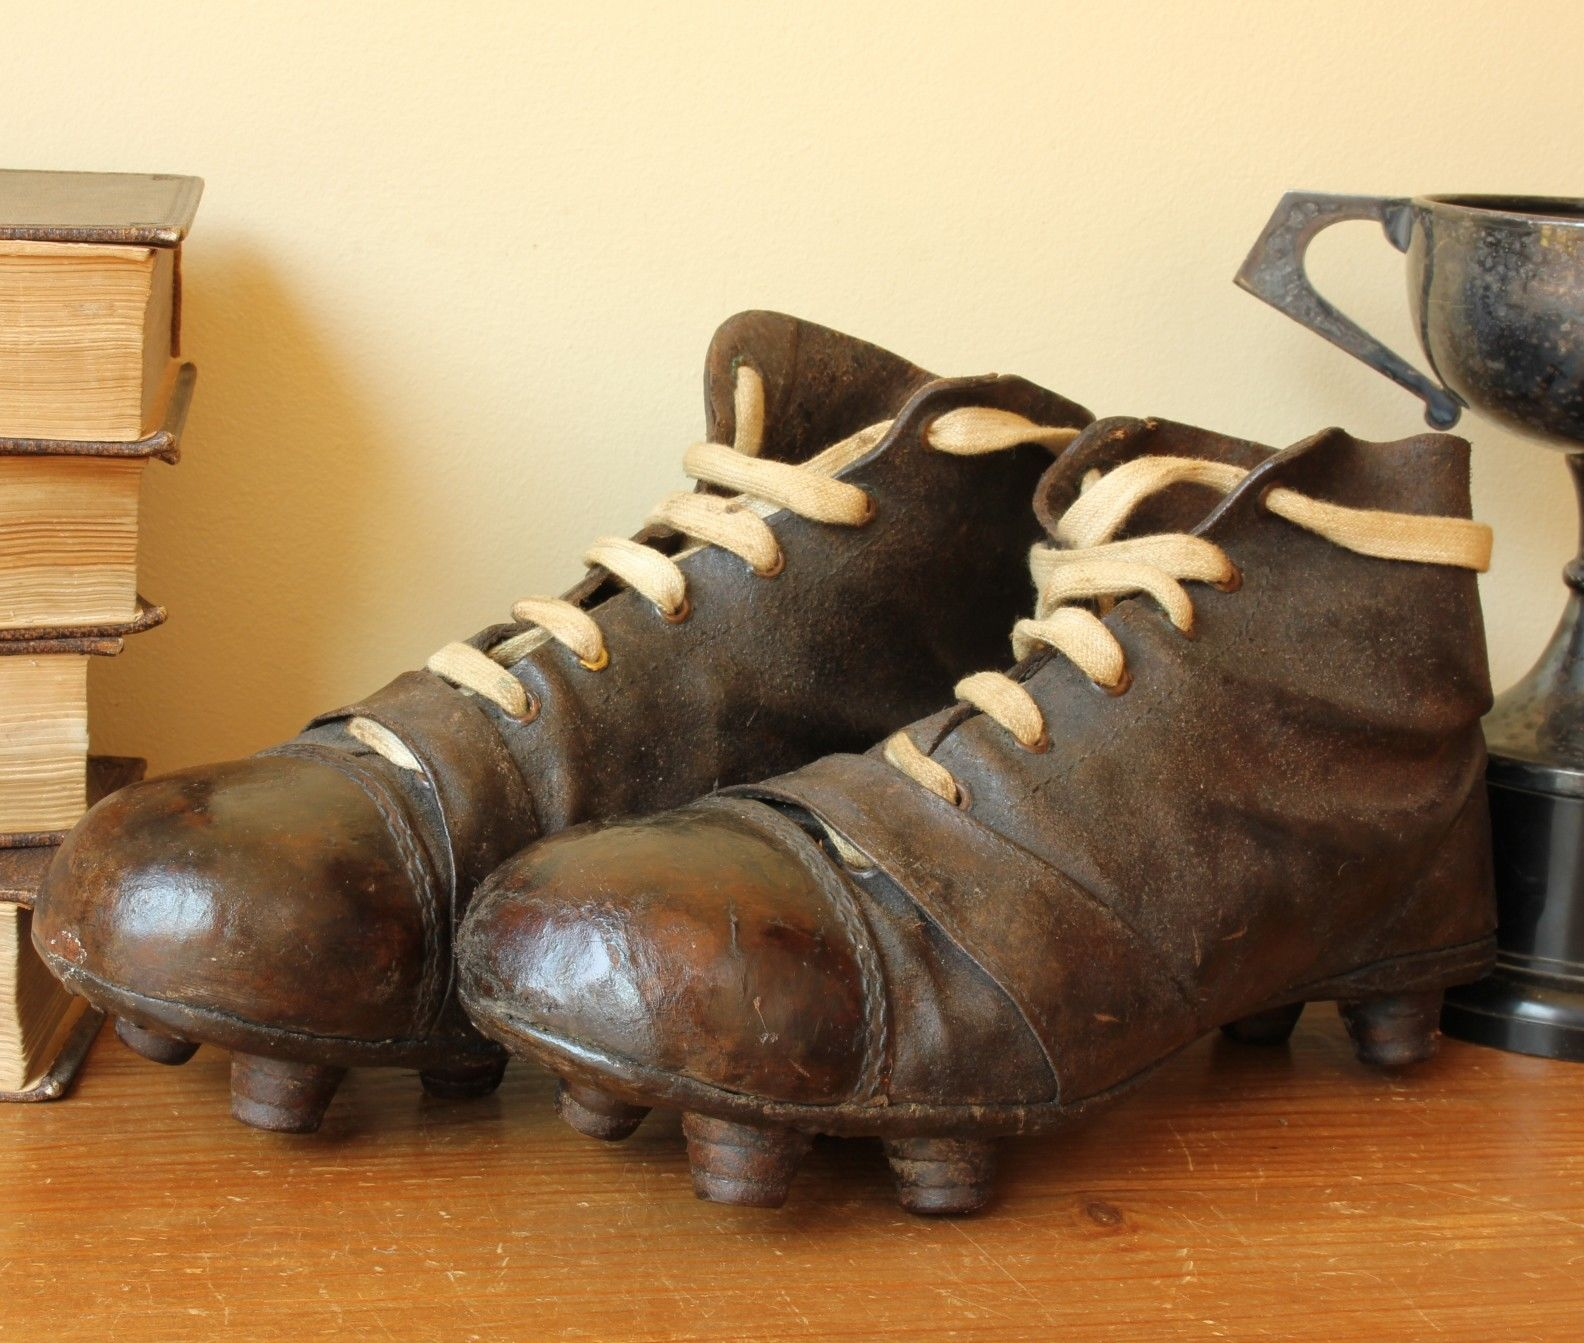 efcd82ecd087 Antique Leather Football Boots. Old Vintage Soccer Cleats c1920.